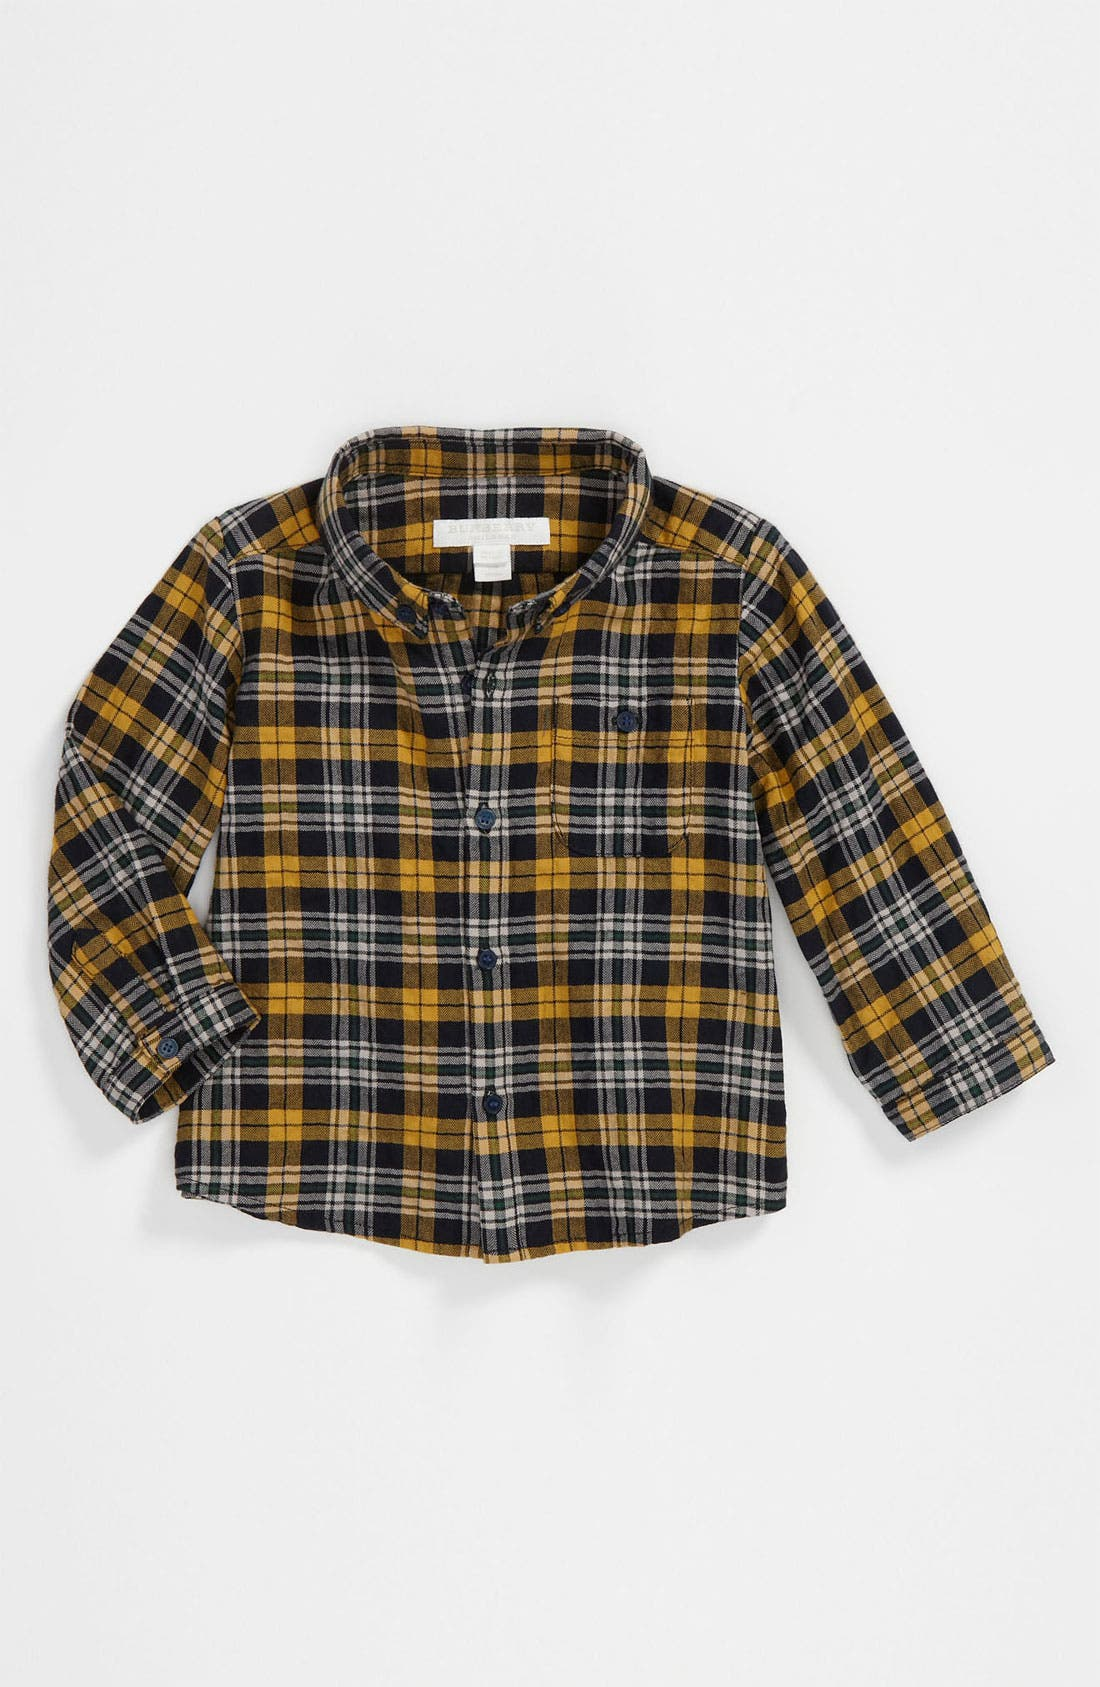 Alternate Image 1 Selected - Burberry 'Trauls' Woven Shirt (Toddler)